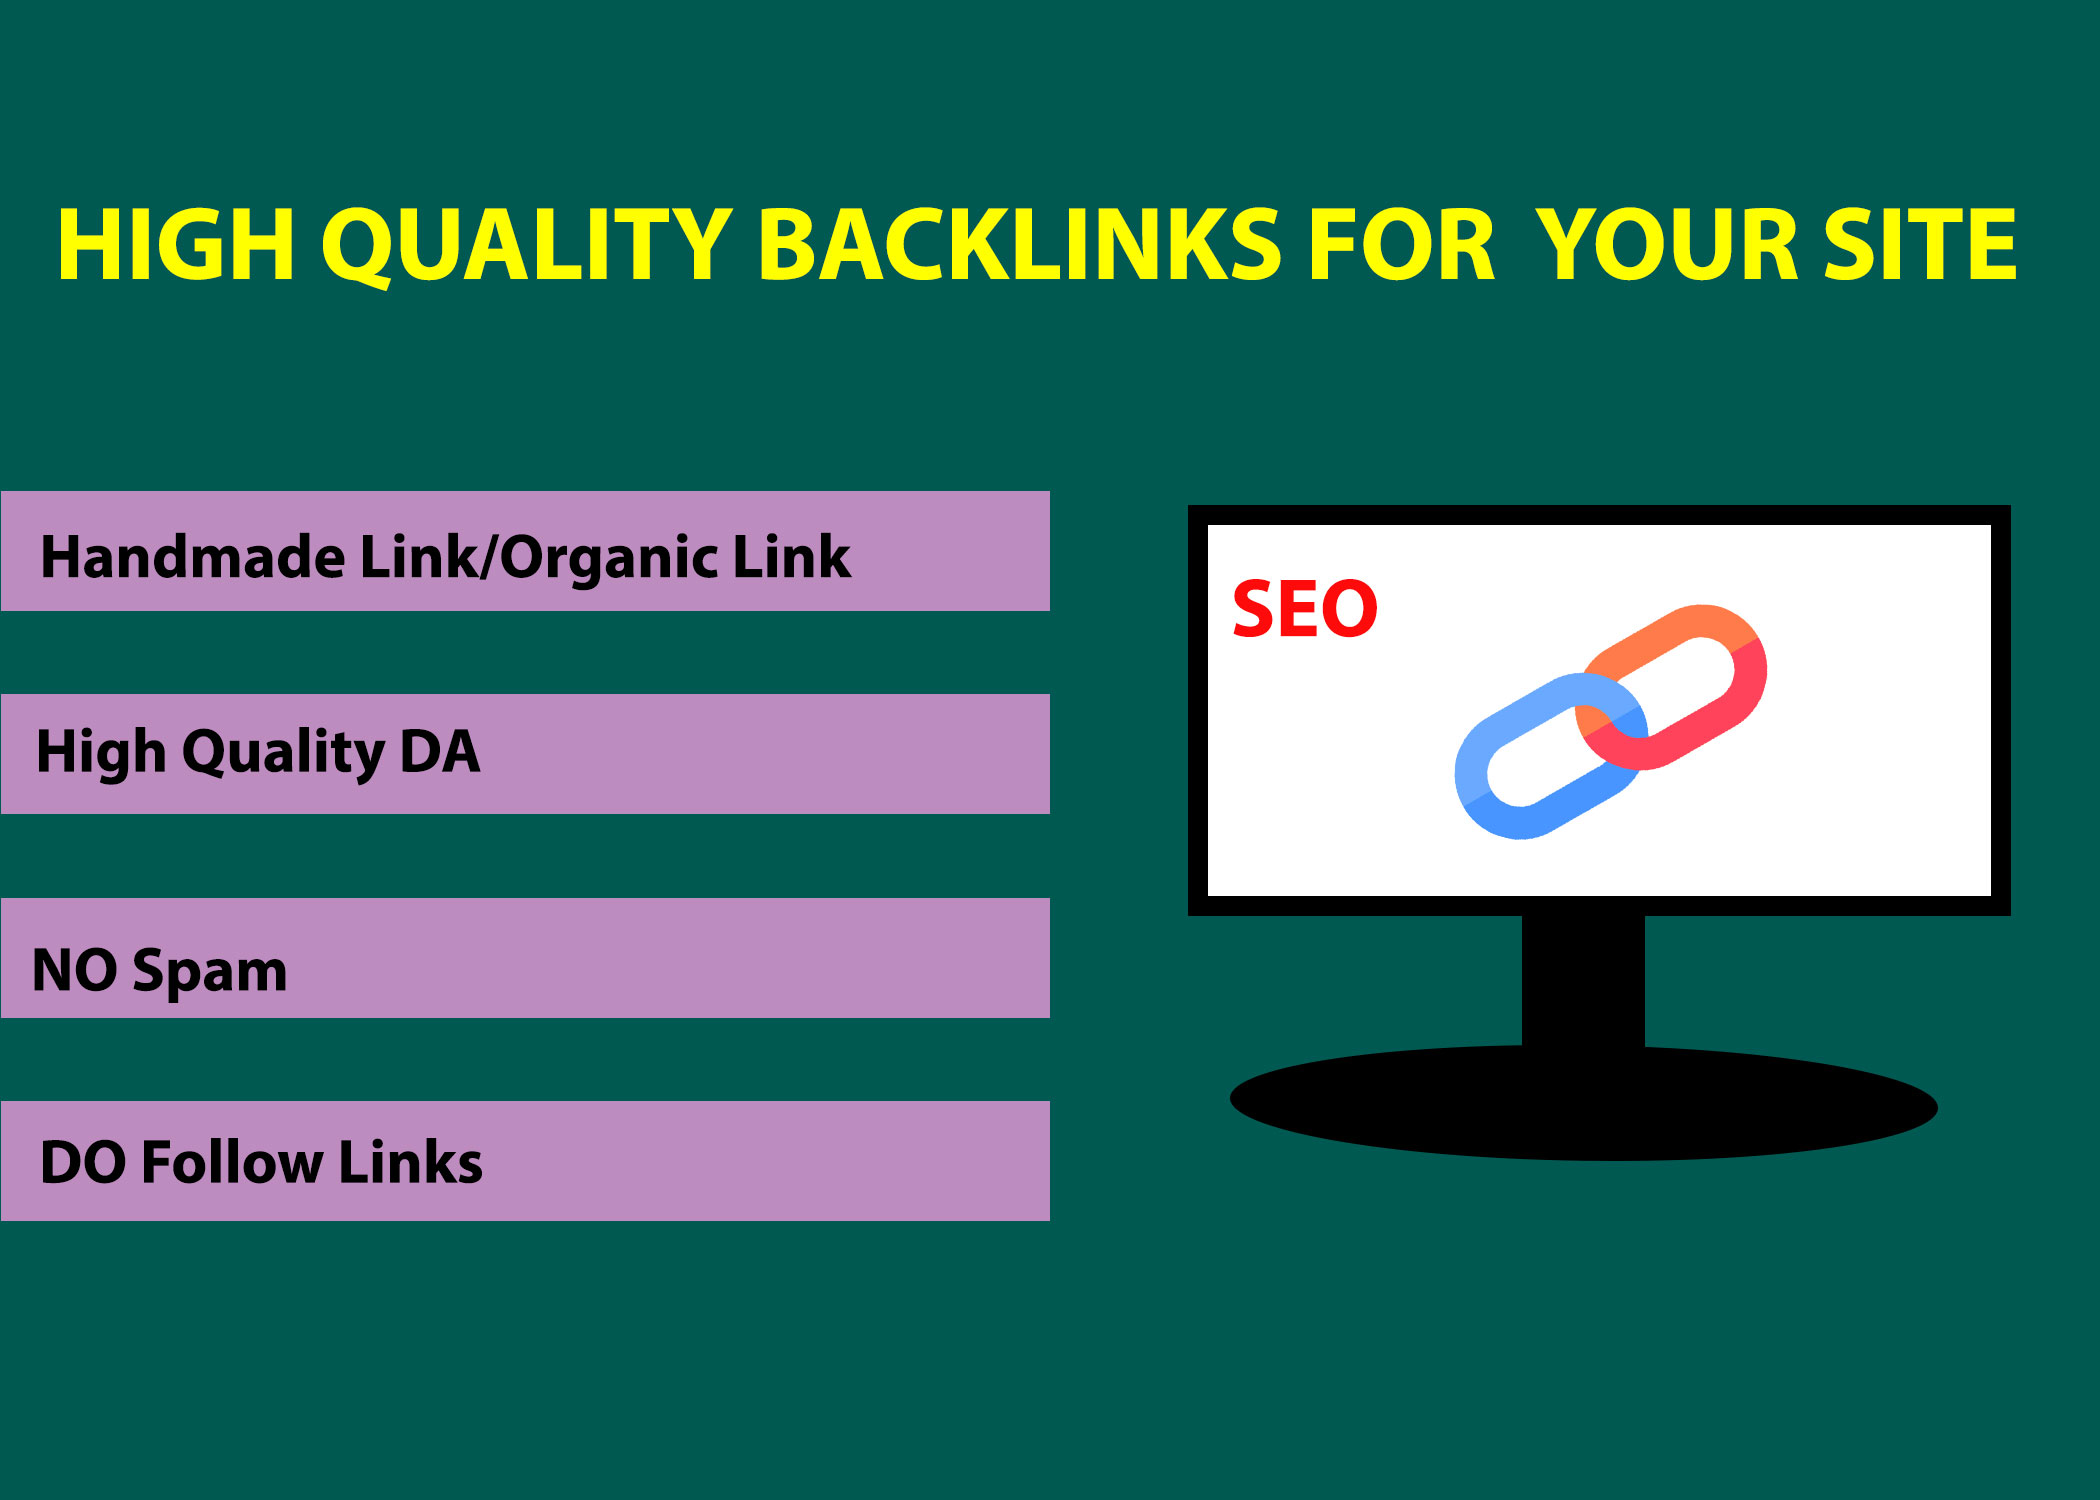 High Quality Backlins For Ranking Your Site